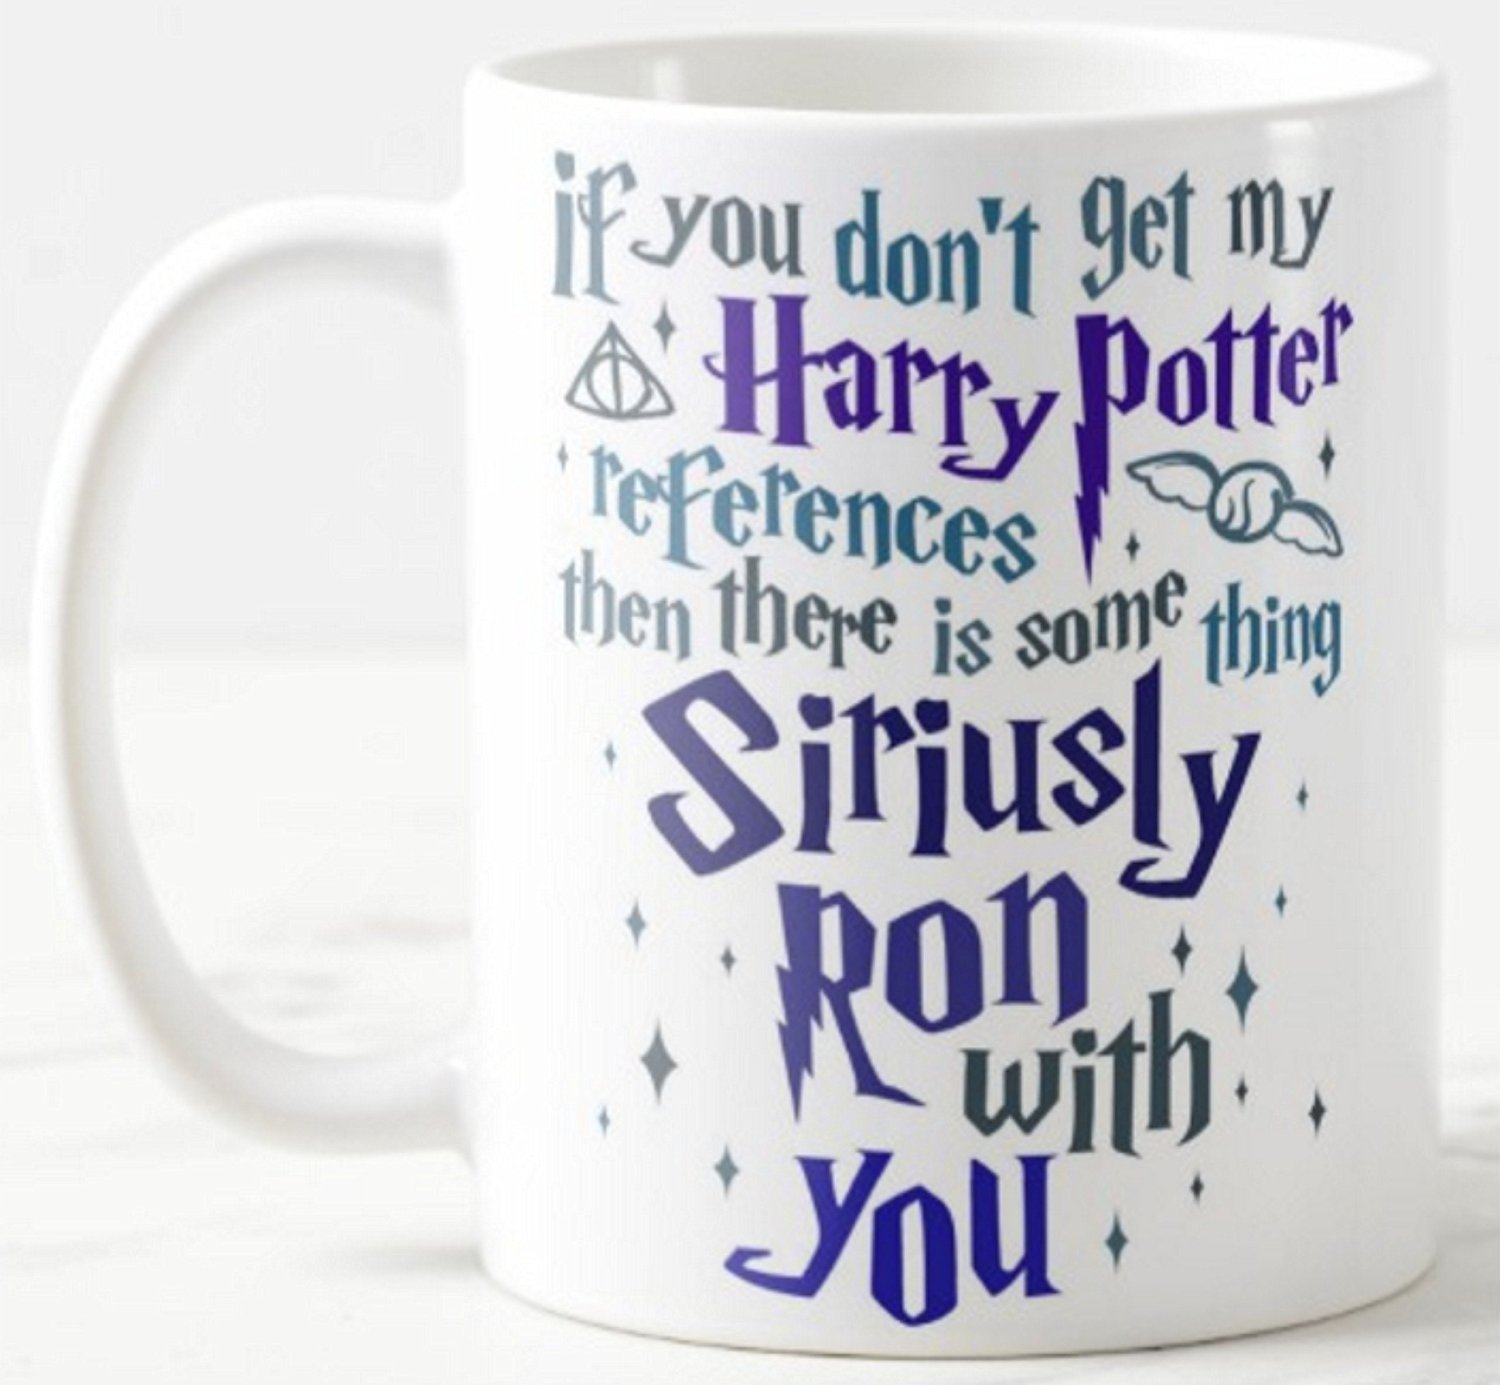 """If You Don't Get My Harry Potter References Then There is Some thing Siriusly Ron with You"" Ceramic Mug, White, 11 oz Lapal Dimension"